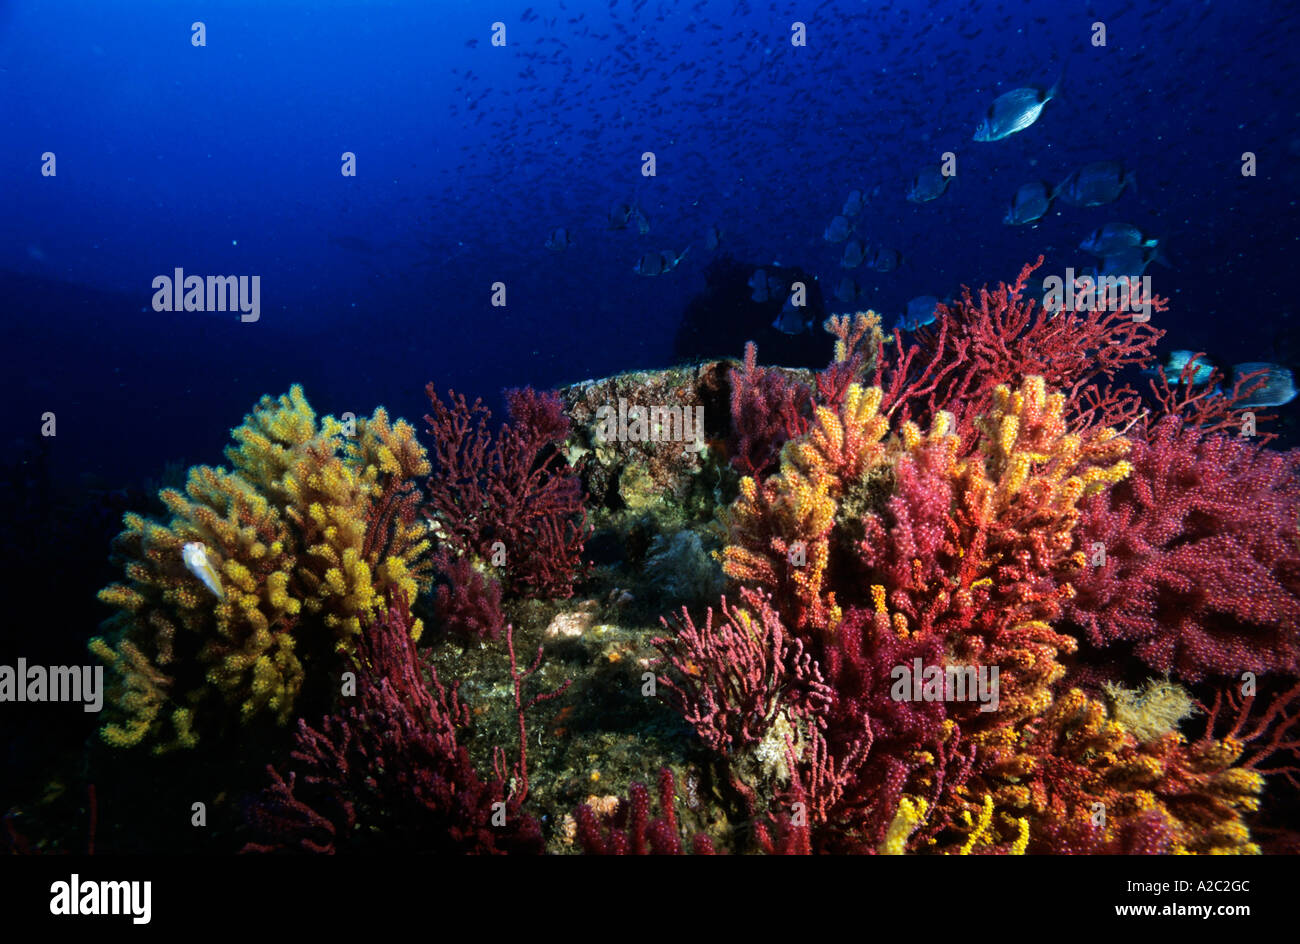 Multicolored gorgonians and sea fans growing on a coral reef with a school of fish swimming in the background. - Stock Image